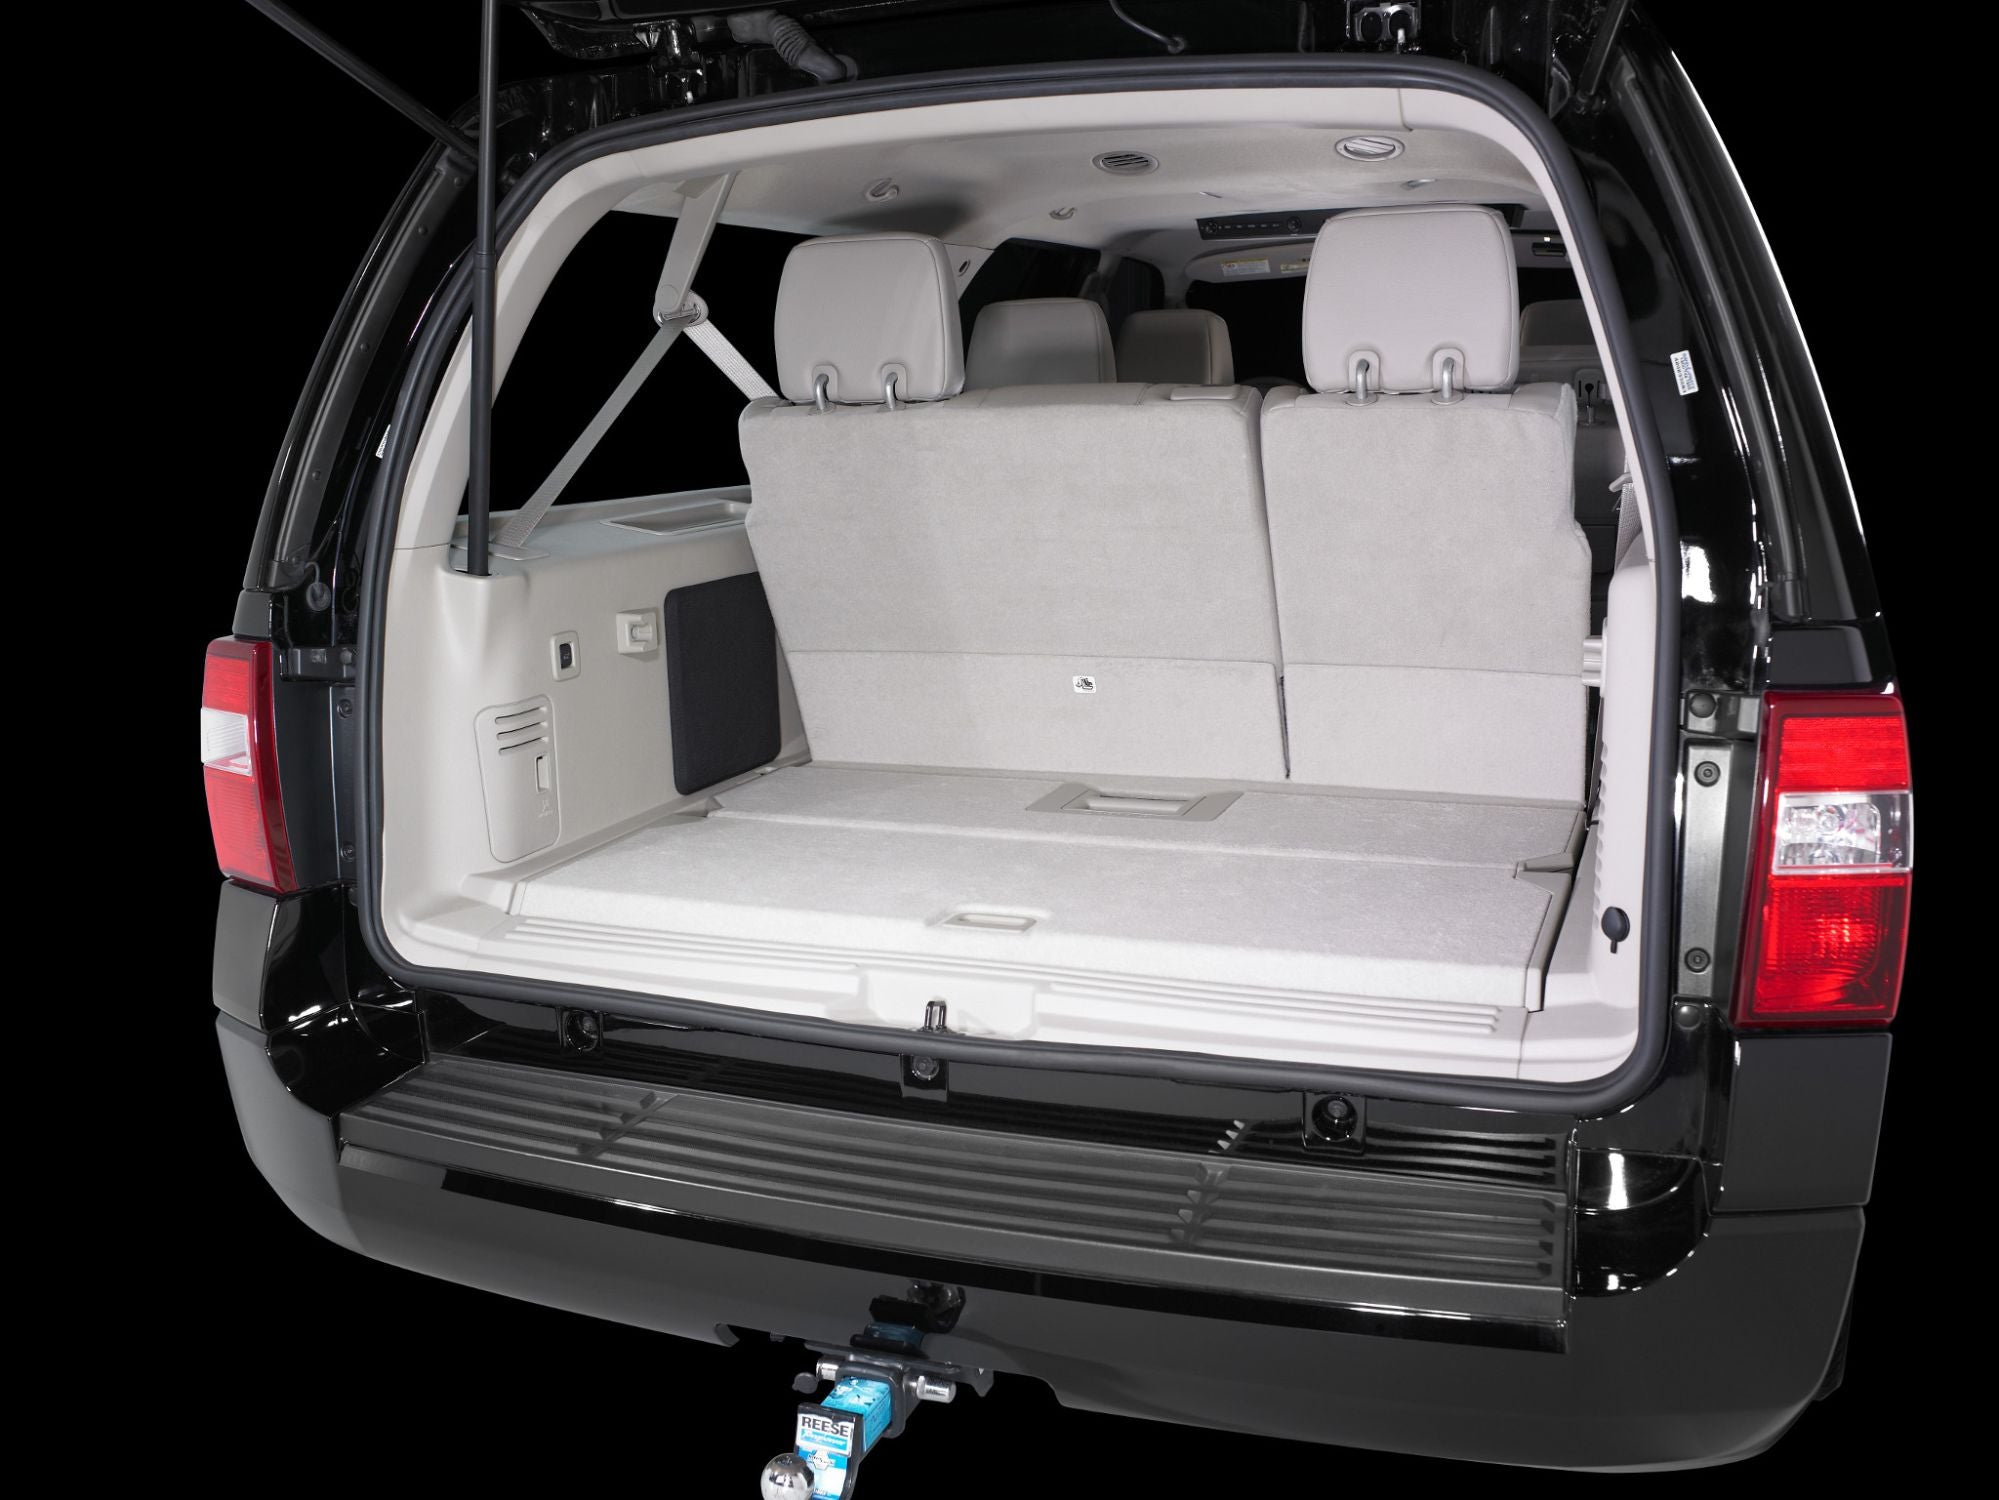 SB-F-EXPDEL-10W3v3 Stealthbox Installed in Vehicle